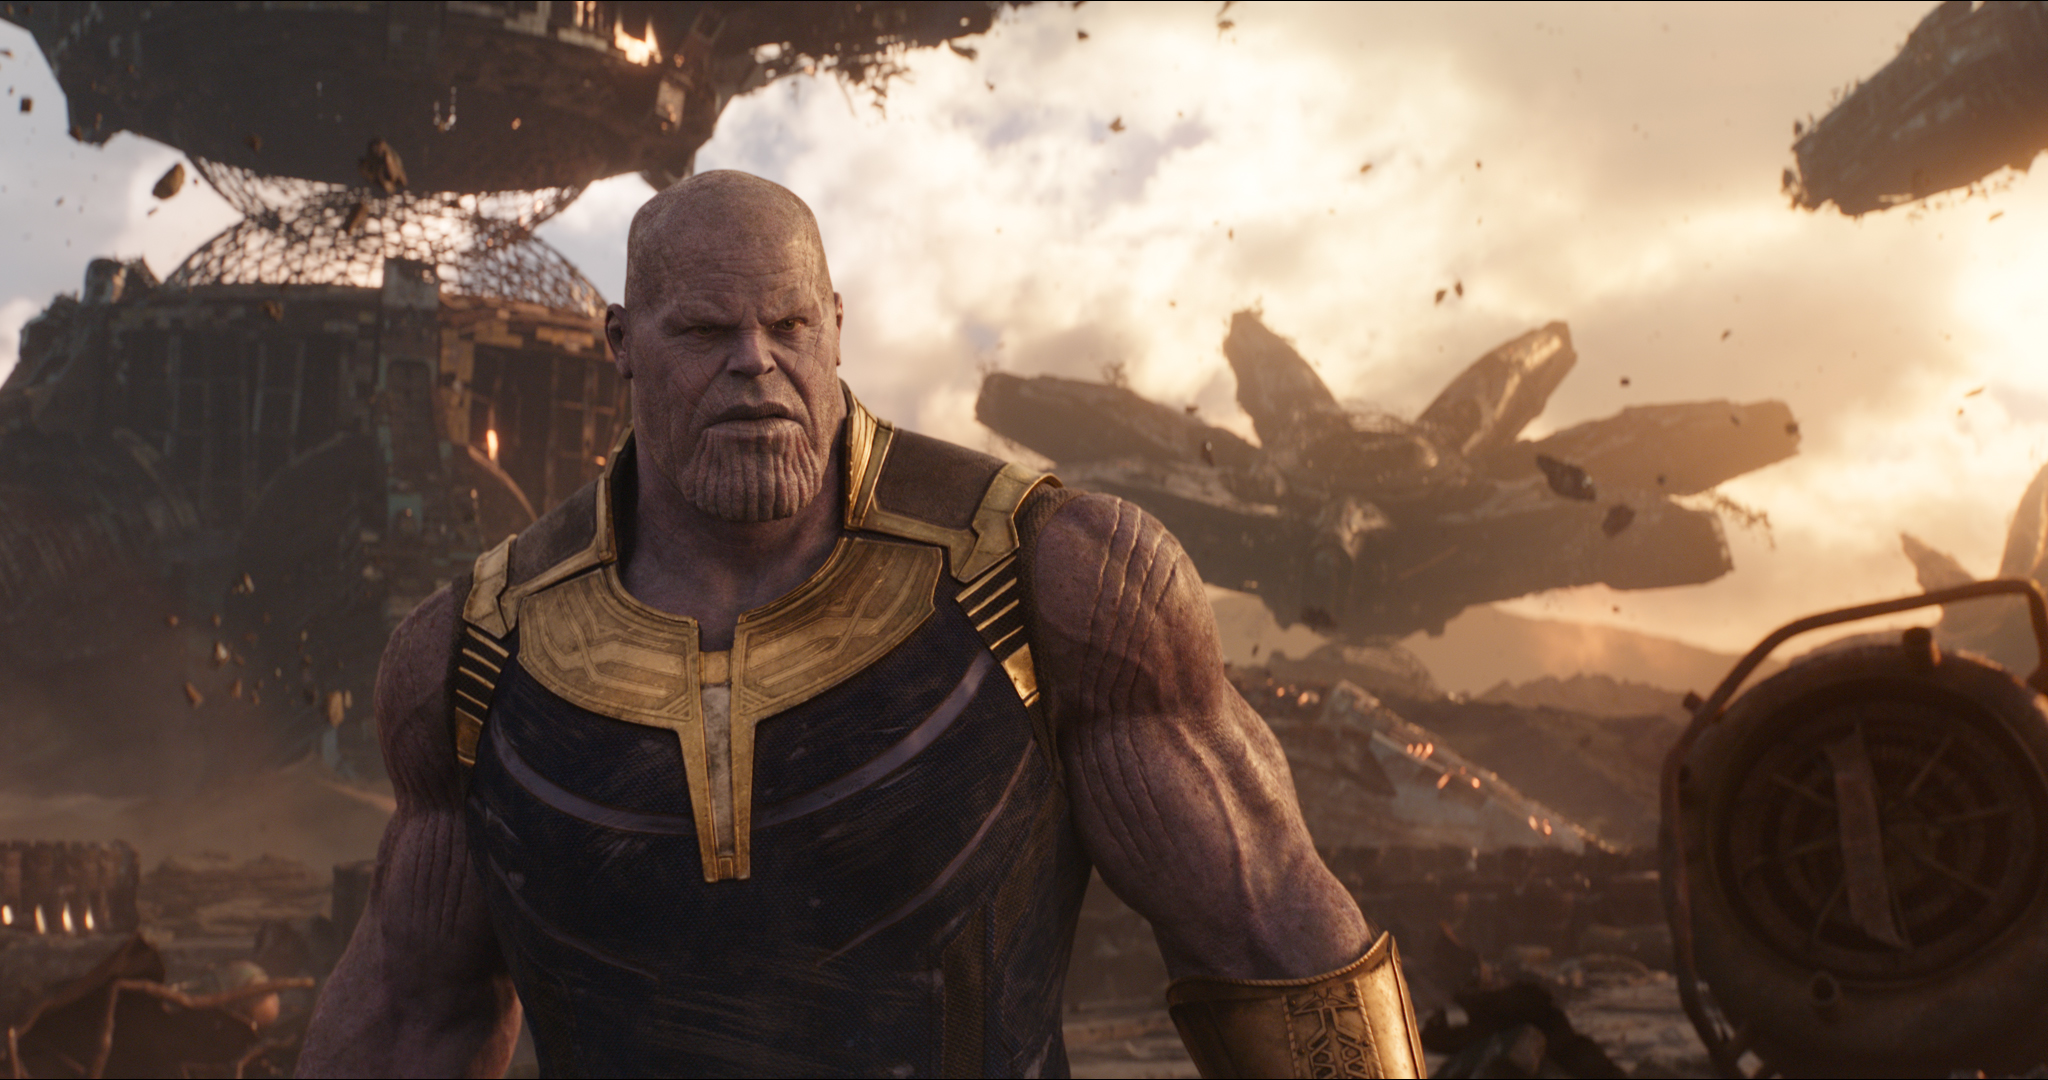 The Avengers 4 running time is currently at 3 hours